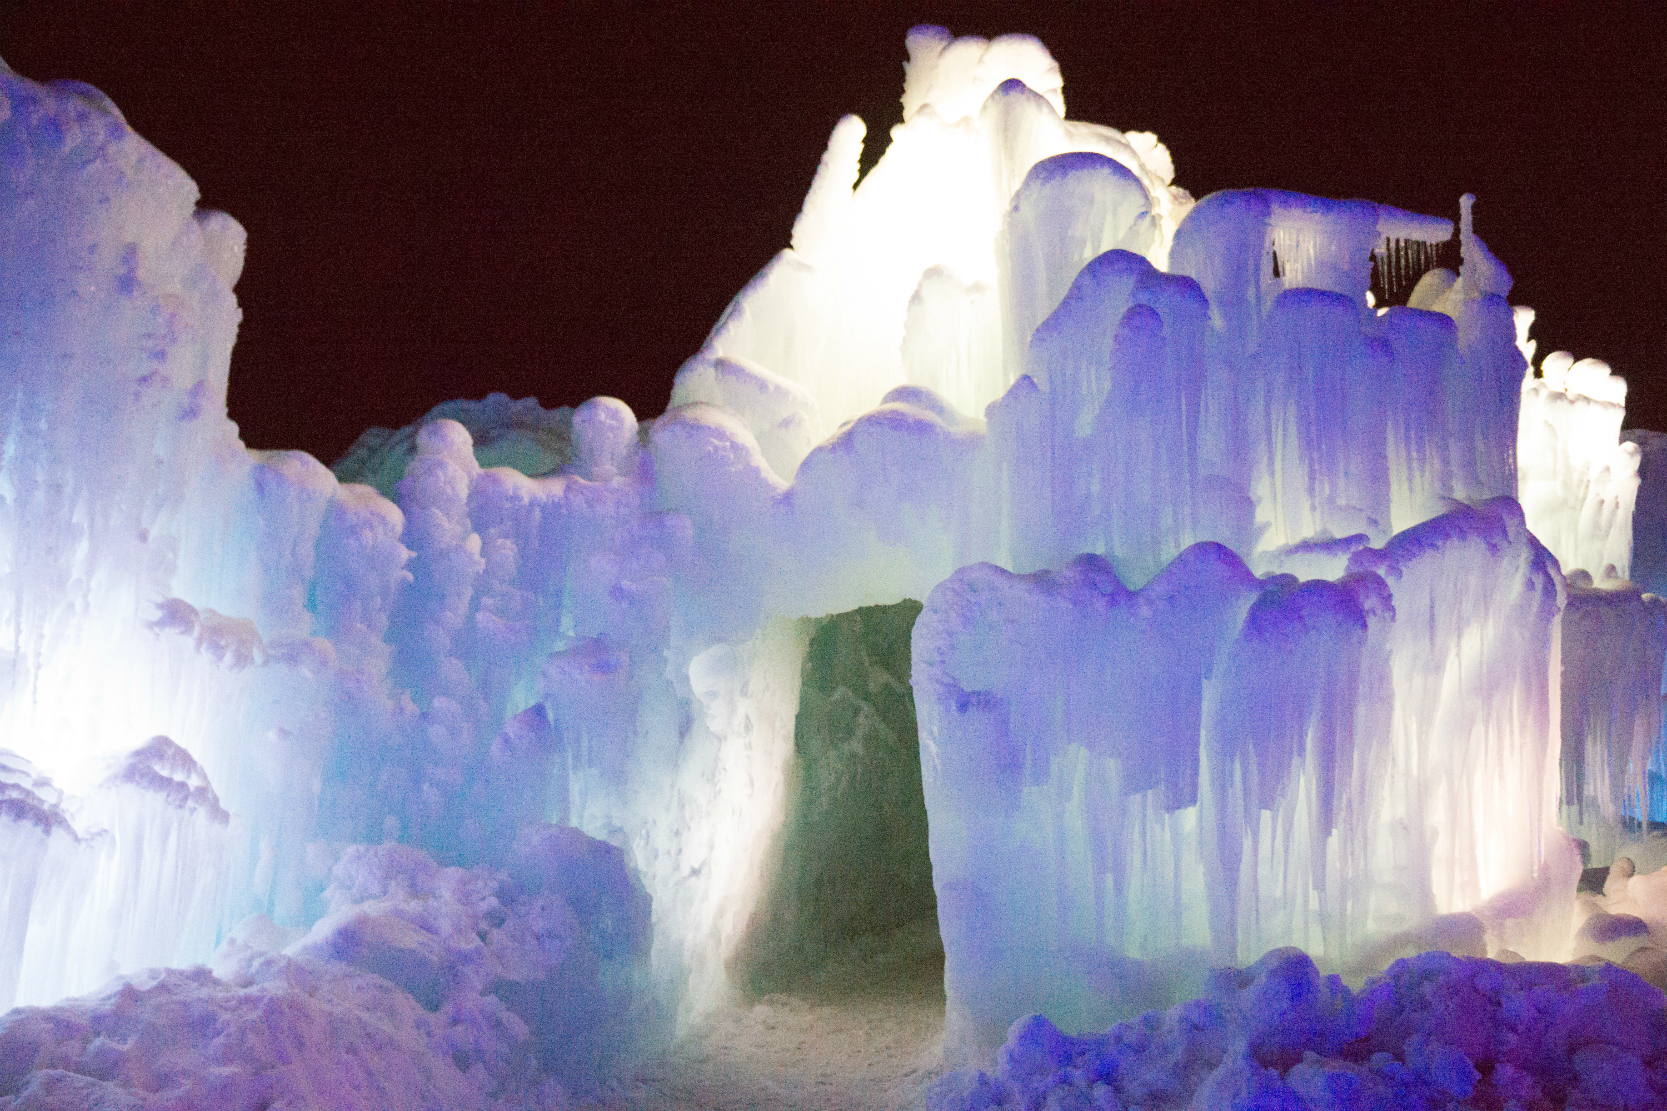 Elsa ice castle in midway